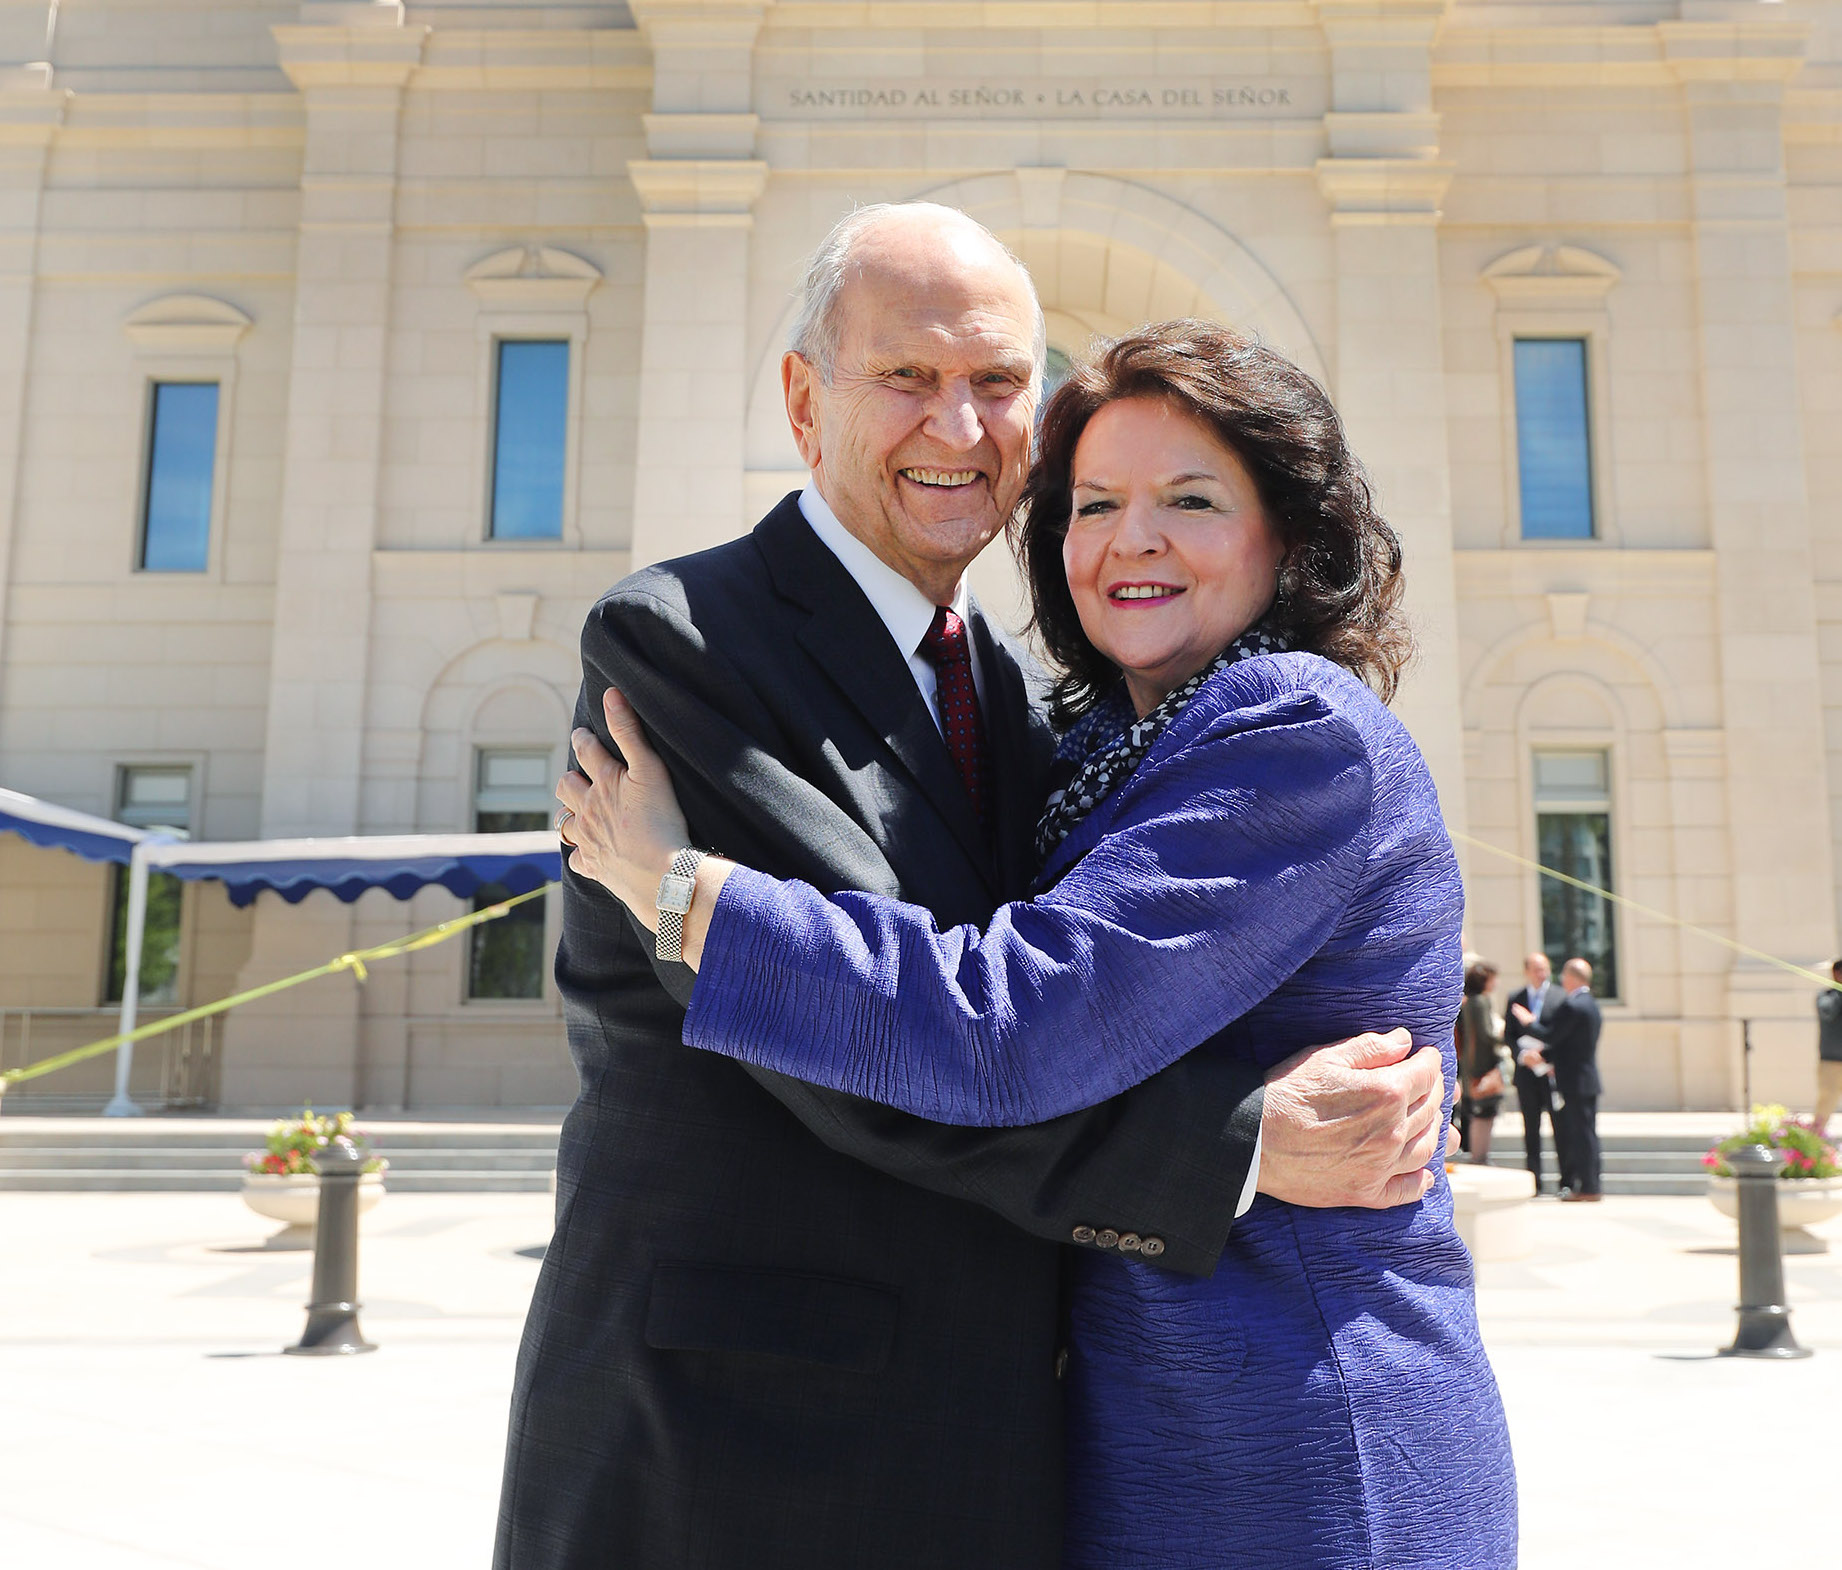 President Russell M. Nelson of The Church of Jesus Christ of Latter-day Saints and his wife Sister Wendy Nelson hug near the temple in Concepcion, Chile on Saturday, Oct. 27, 2018.